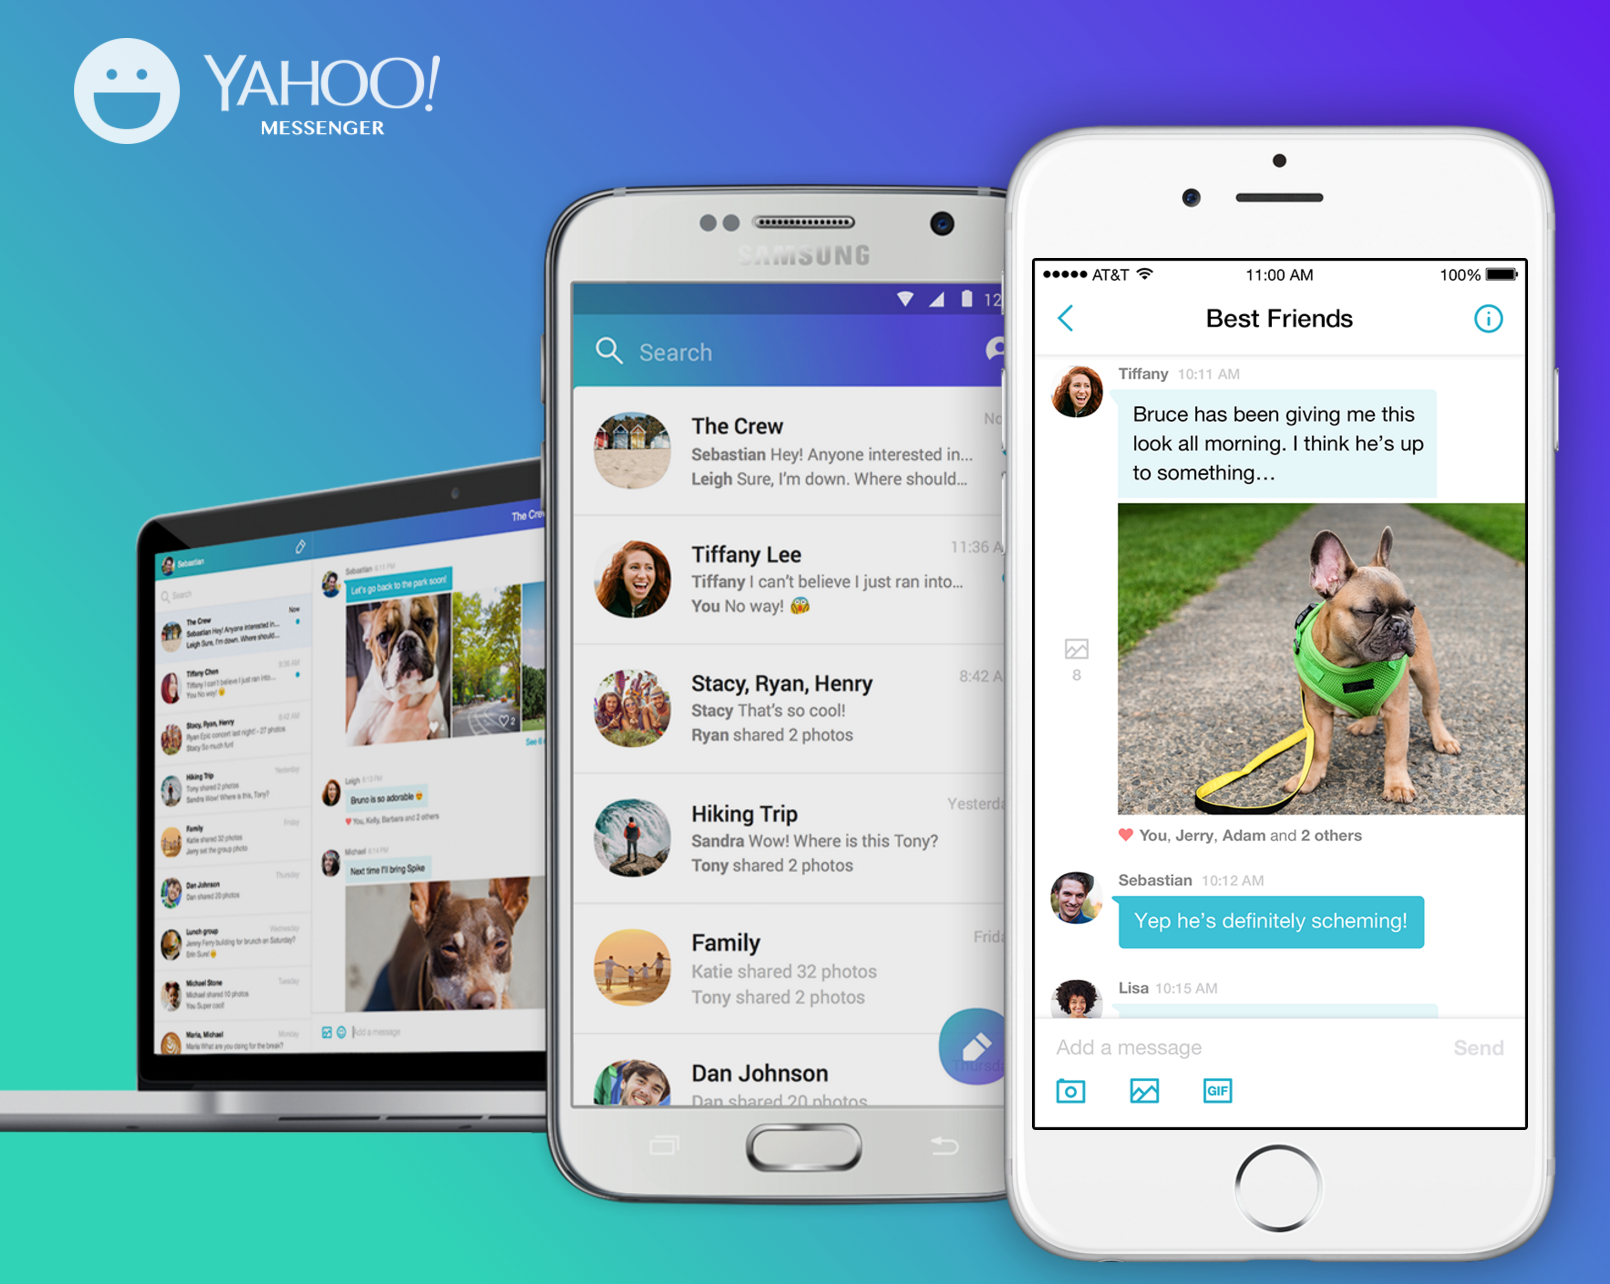 Say goodbye to Yahoo Messenger!